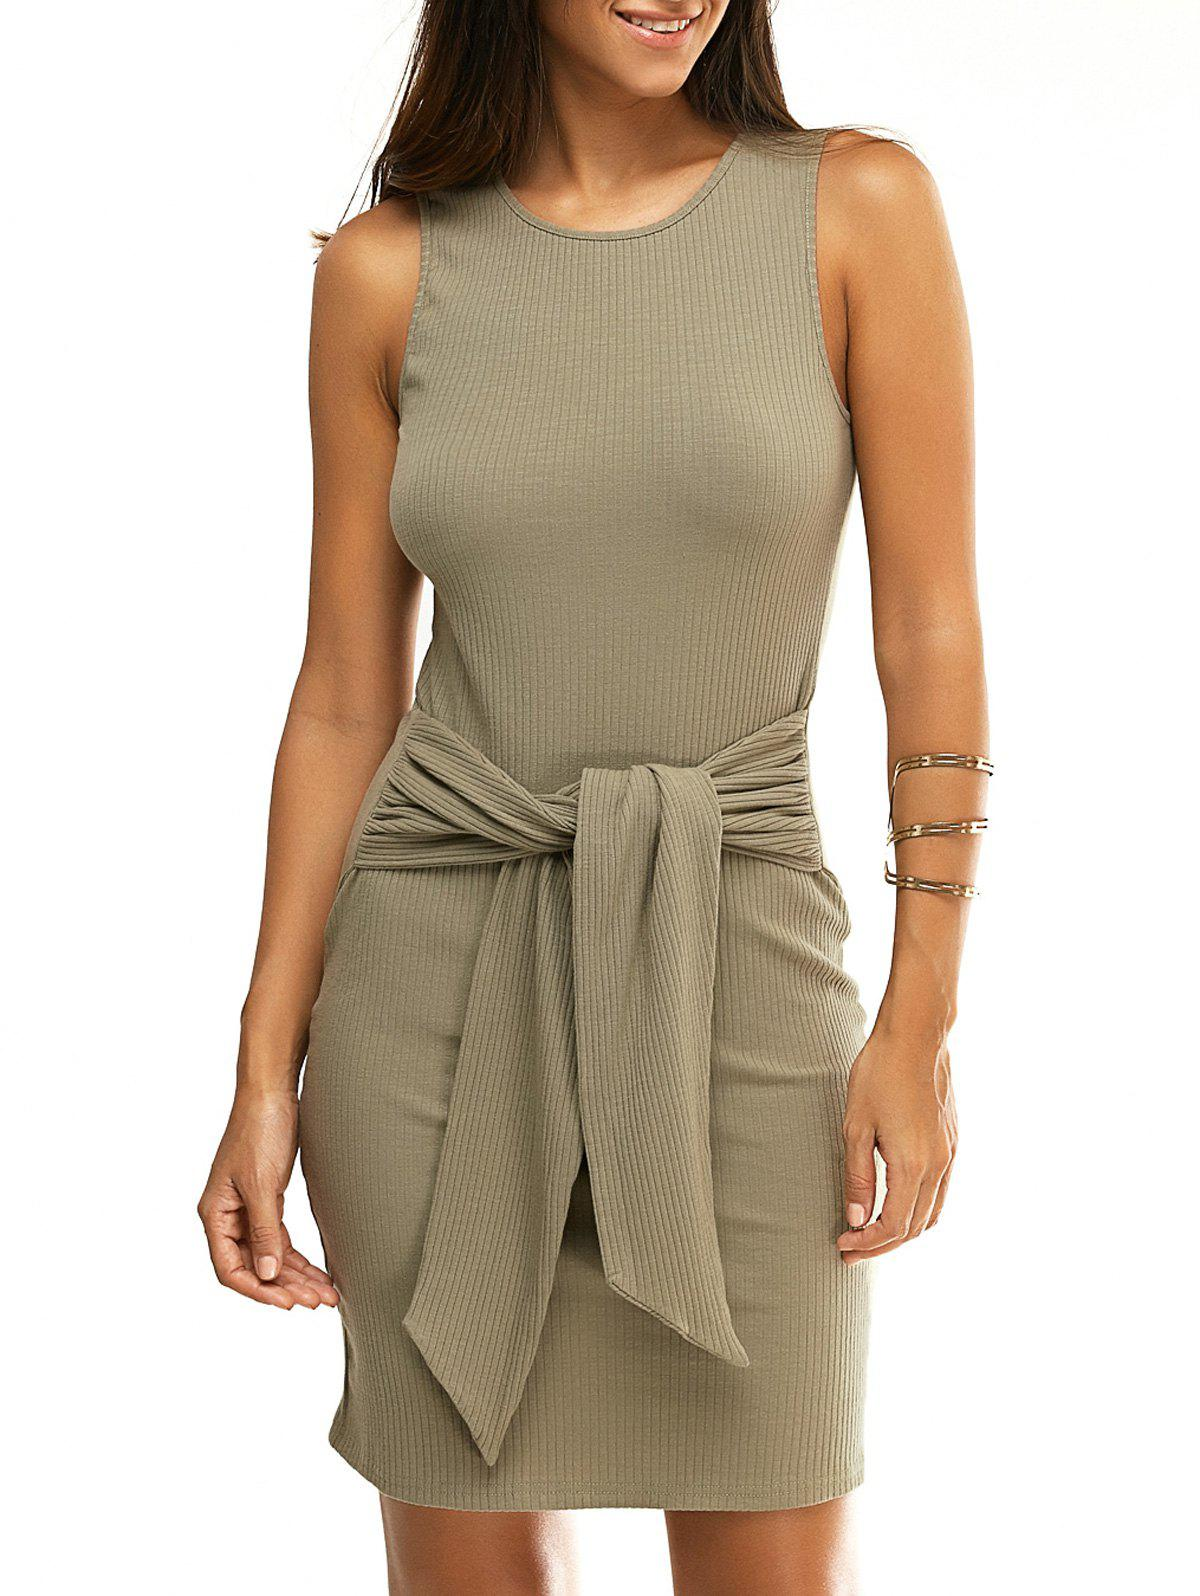 Fashionable Sleeveless Round Collar Pure Color Skinny Knotted Women's Dress - PEA GREEN L